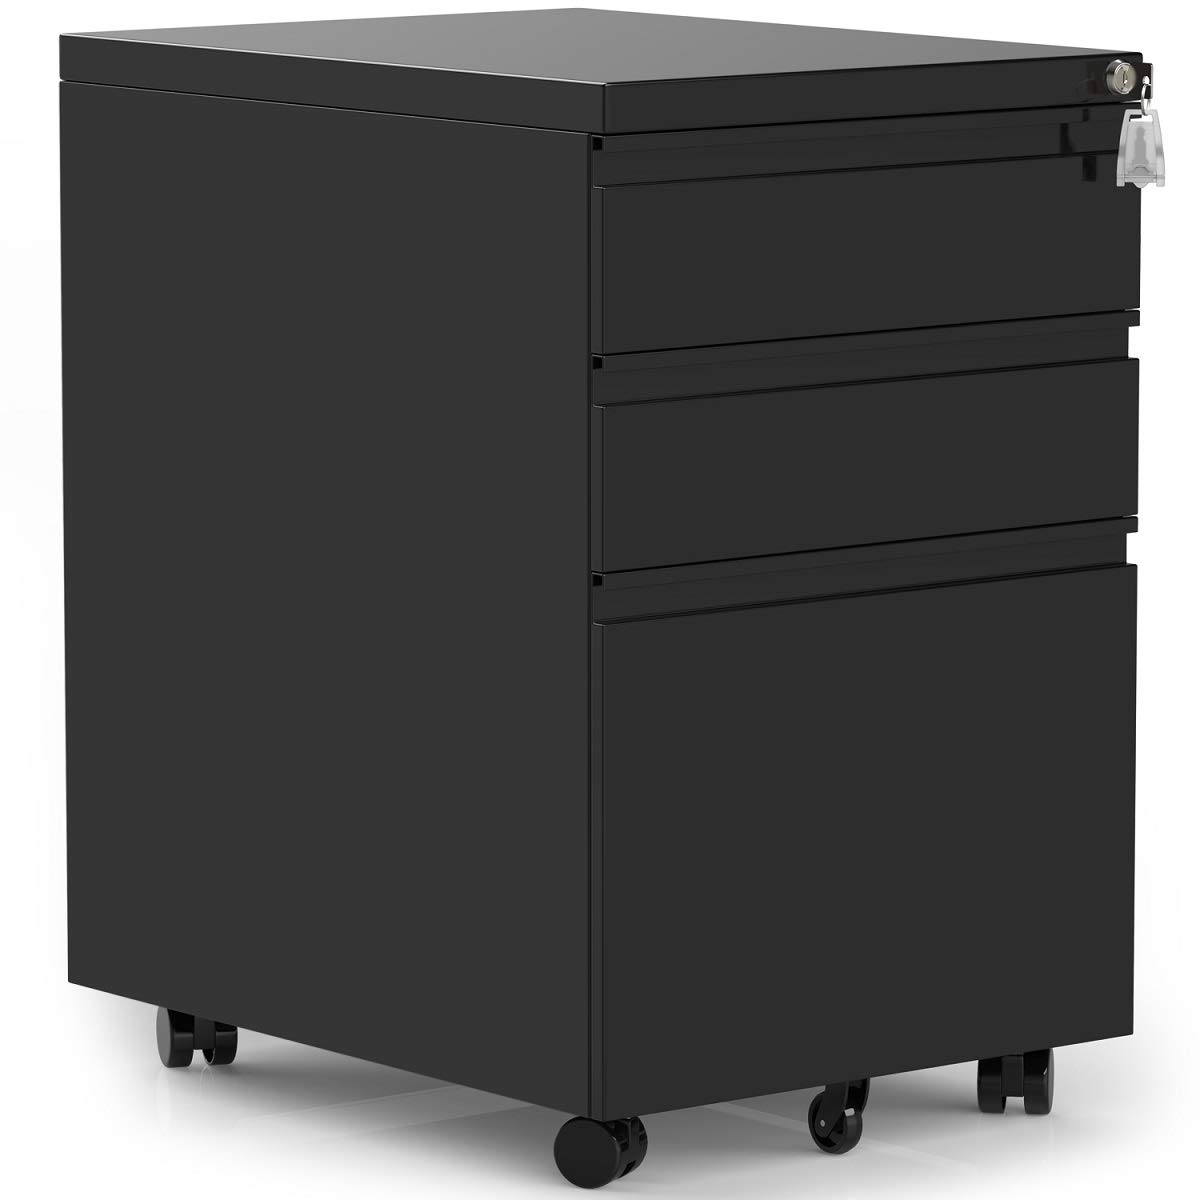 Merax 3-Drawer Mobile File Cabinet with Keys, Fully Assembled Except Casters (Black) by Merax